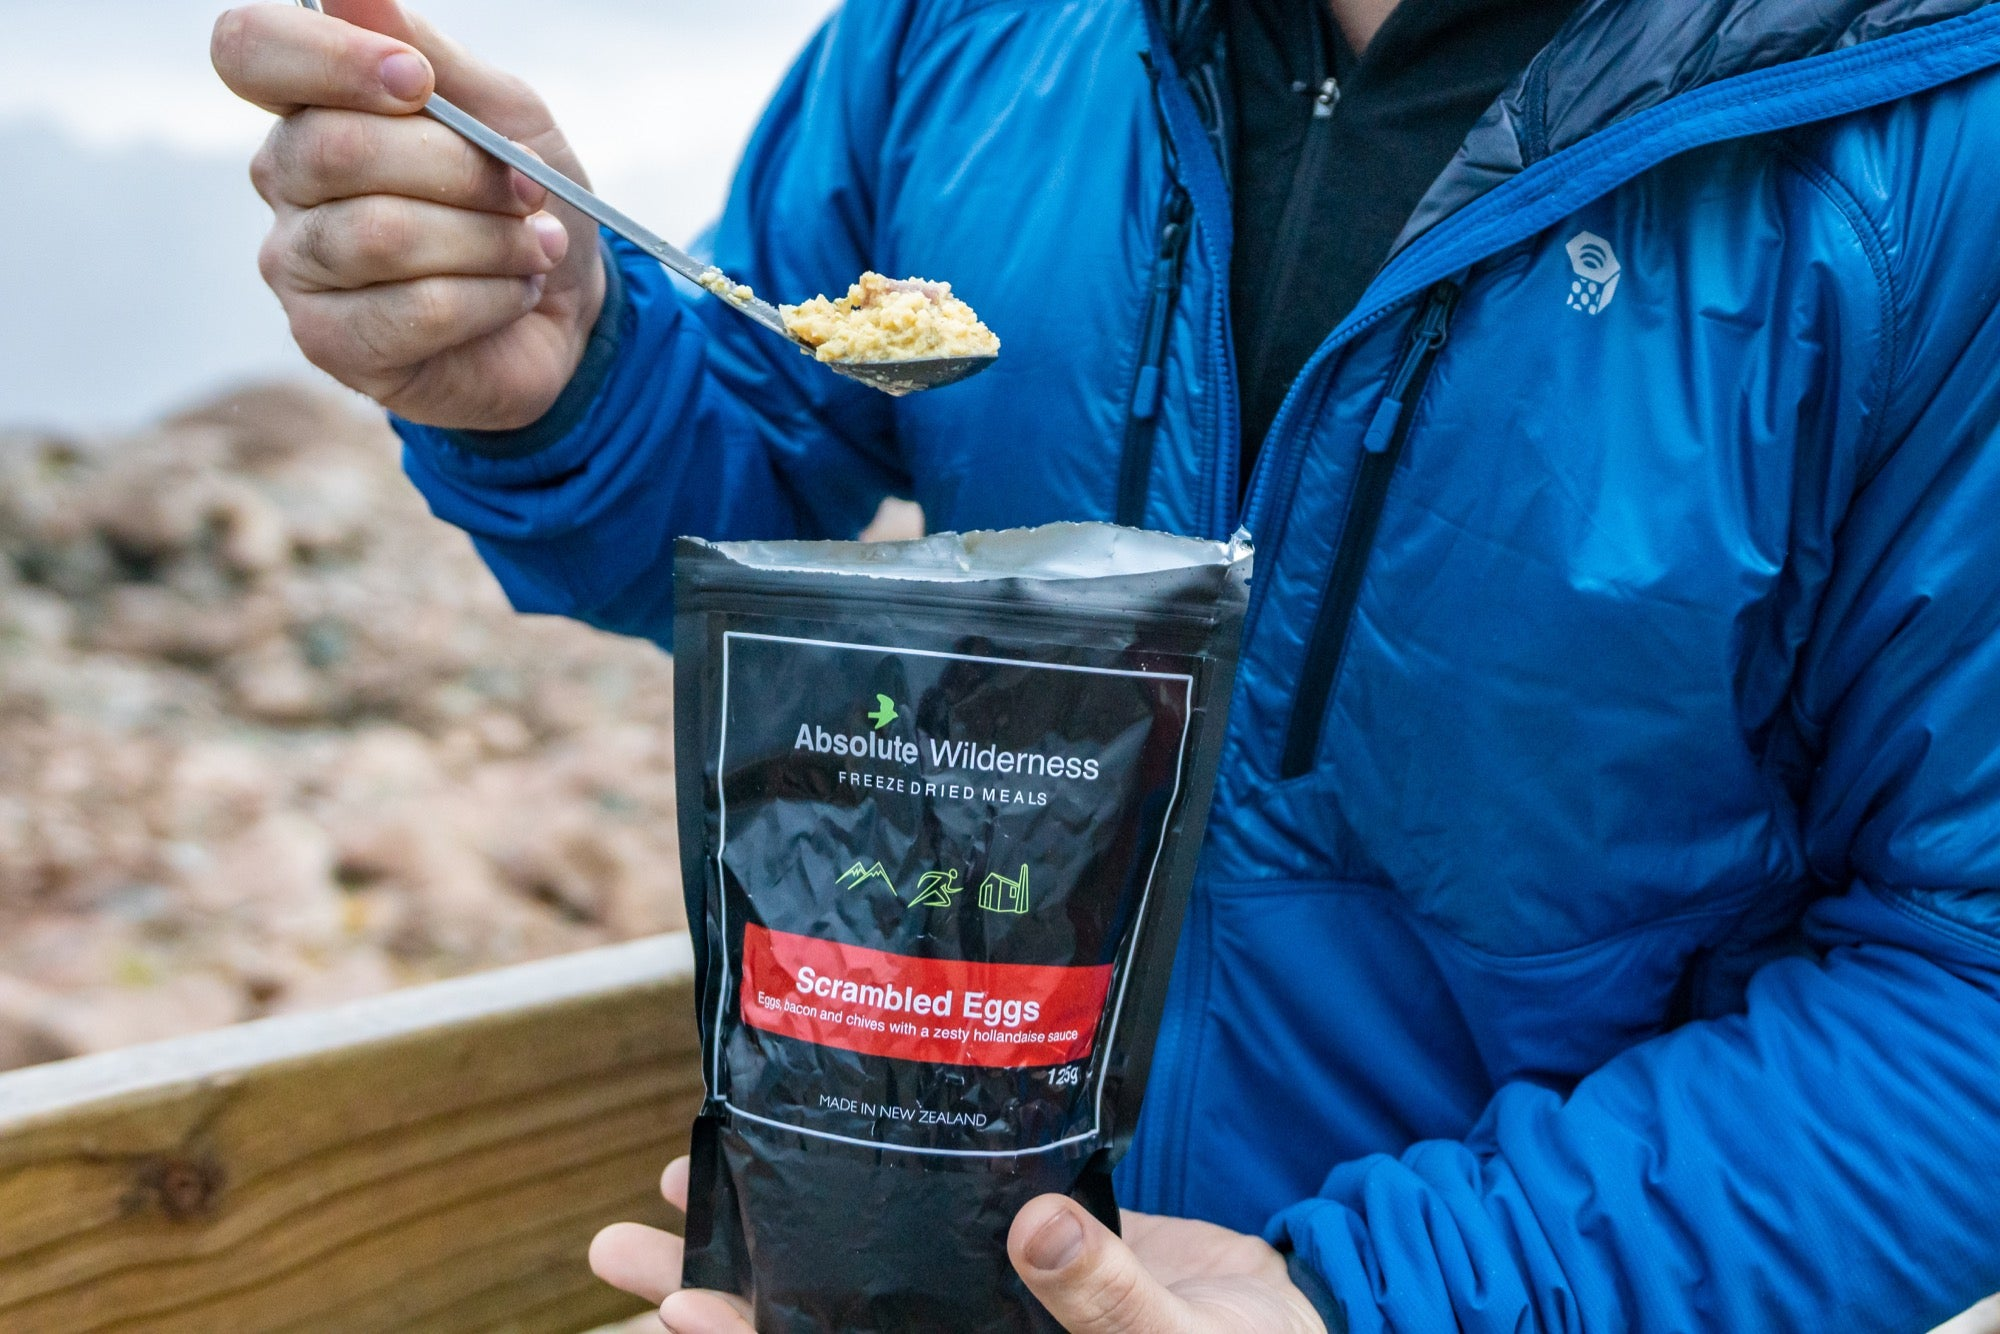 Local food company an absolute star in the eyes of hungry backcountry trampers